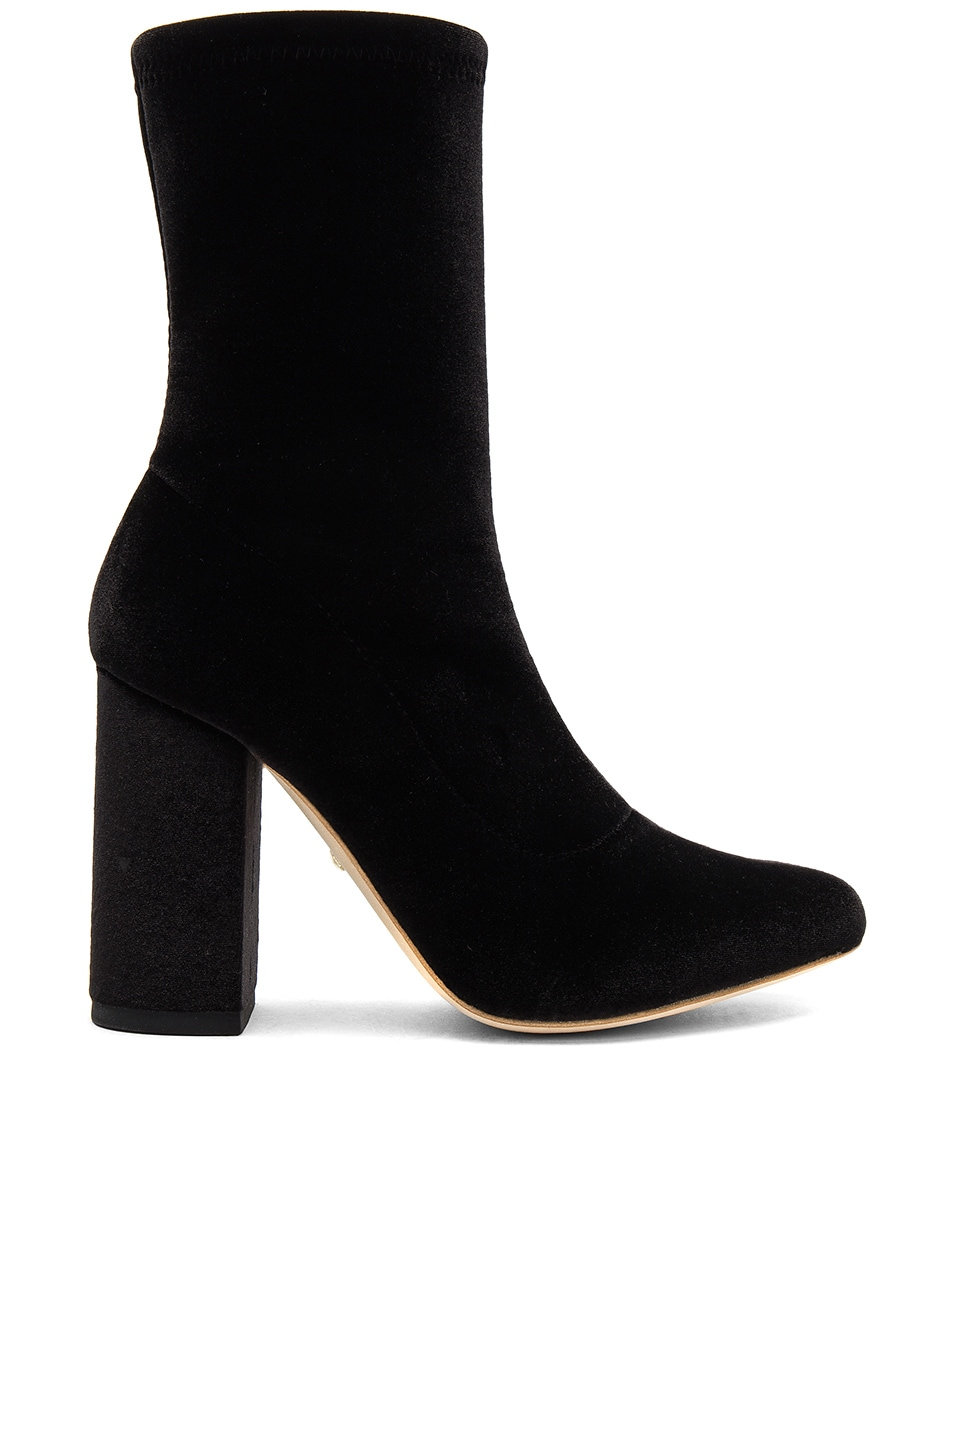 RAYE Faris Boot in Black Velvet